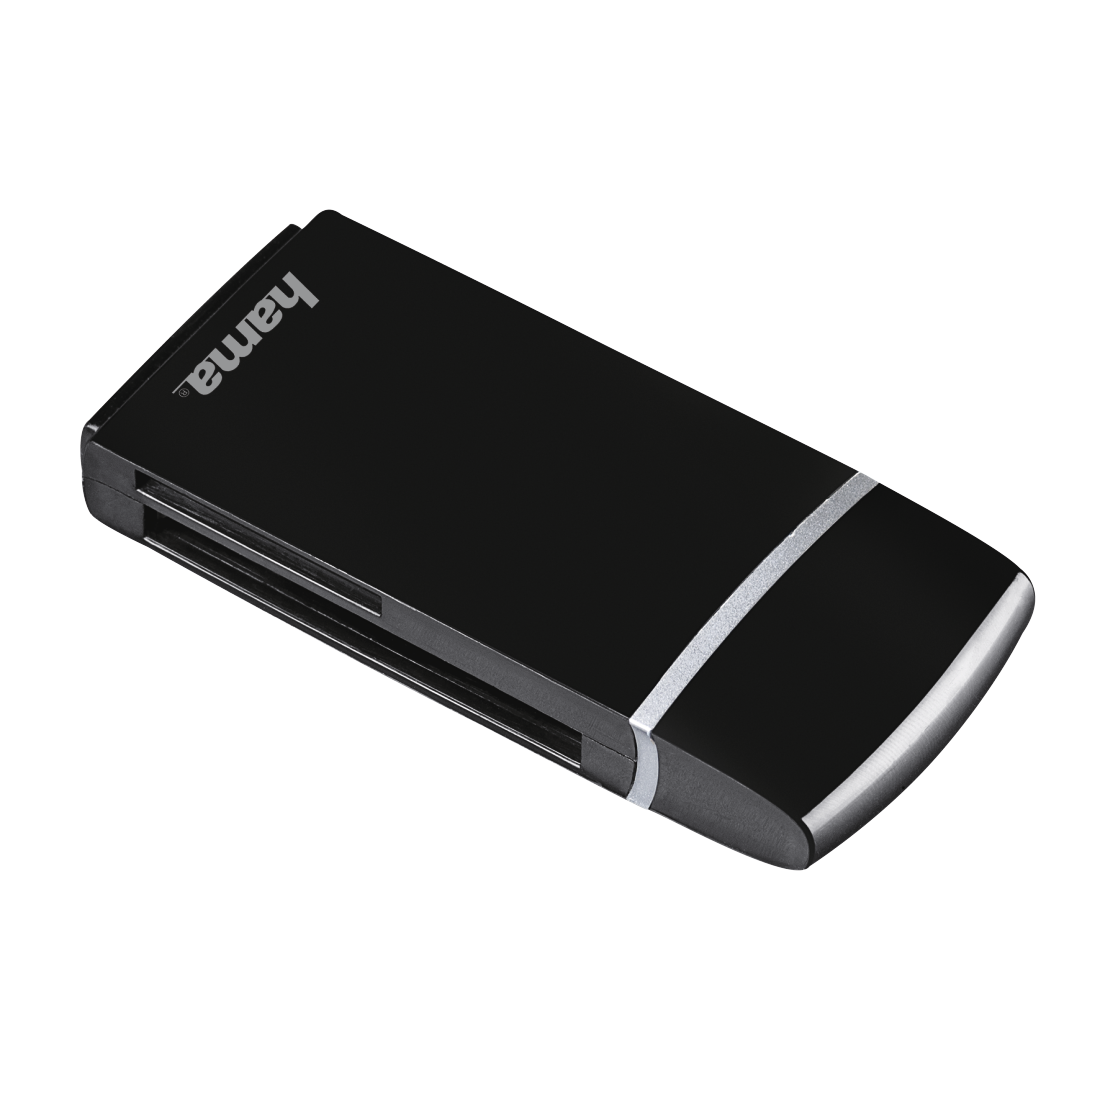 Hama USB-3.0 Multi Card Reader SD MicroSD CF black